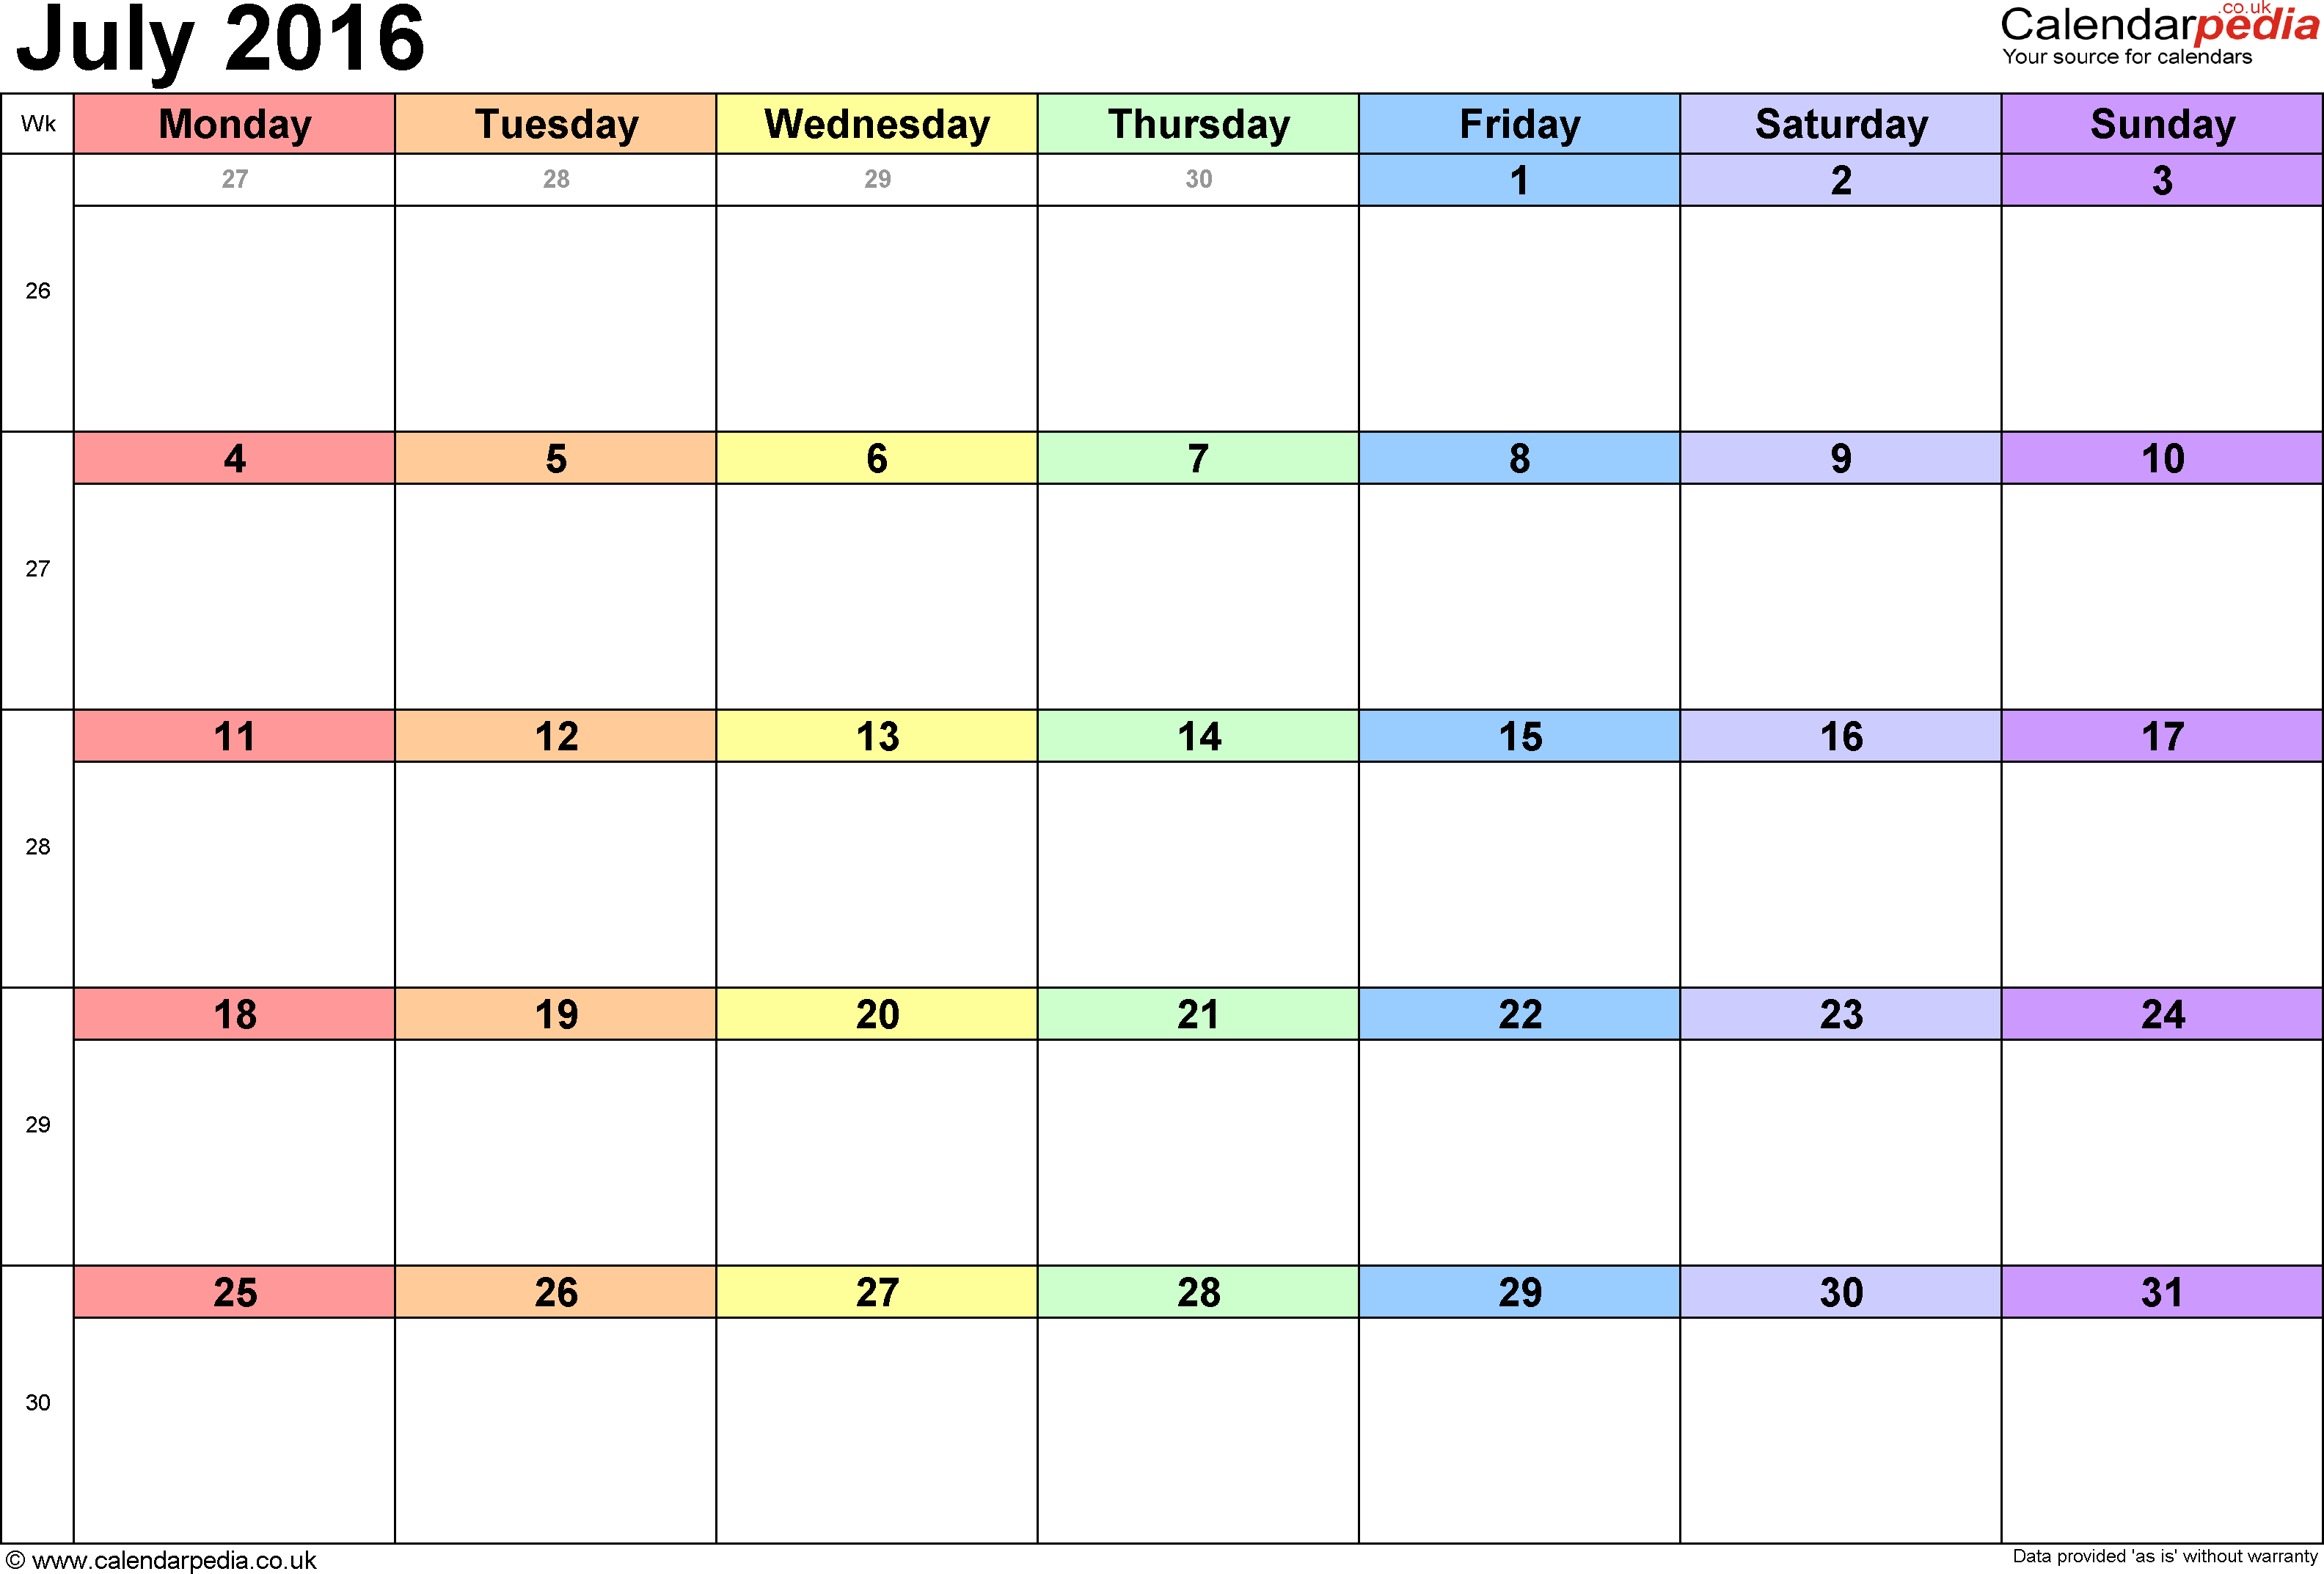 Calendar July 2016, landscape orientation, 1 page, with UK bank holidays and week numbers